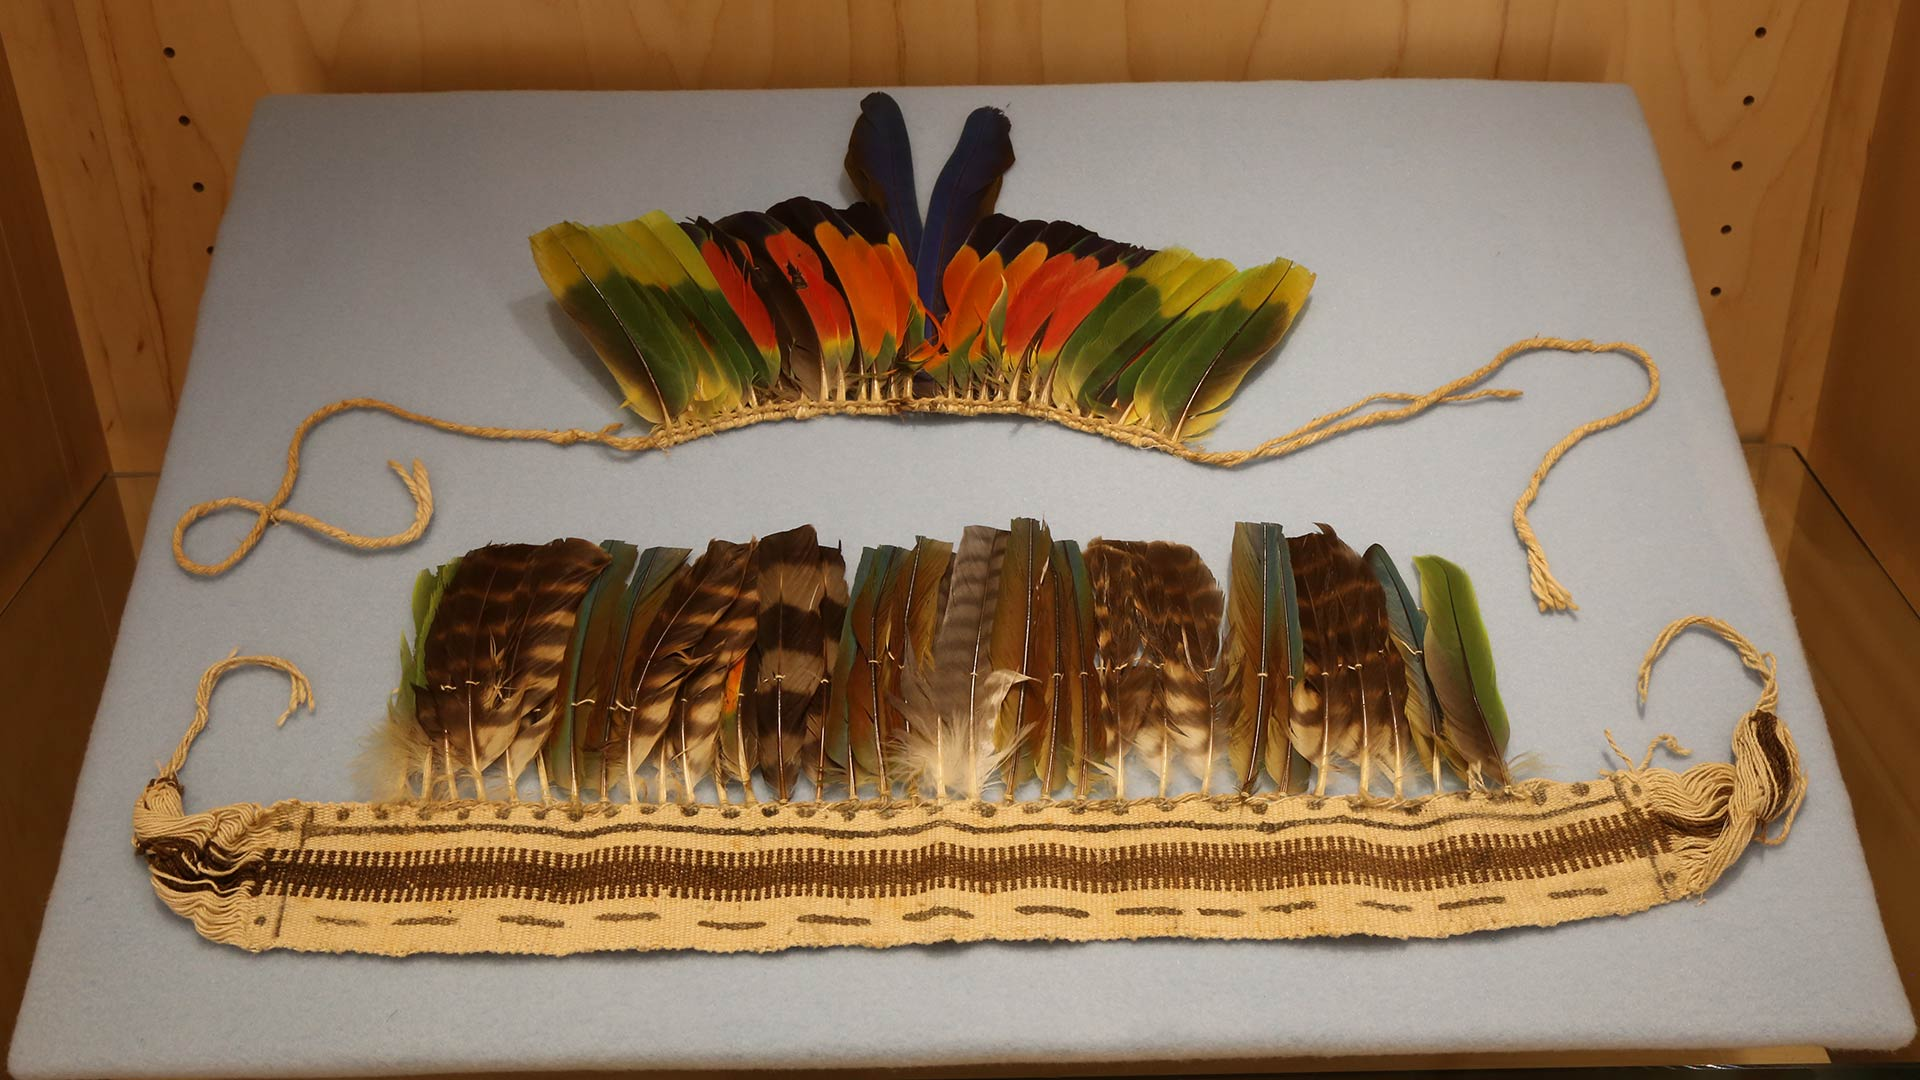 headdress made of woven twine with multicolored feathers attached